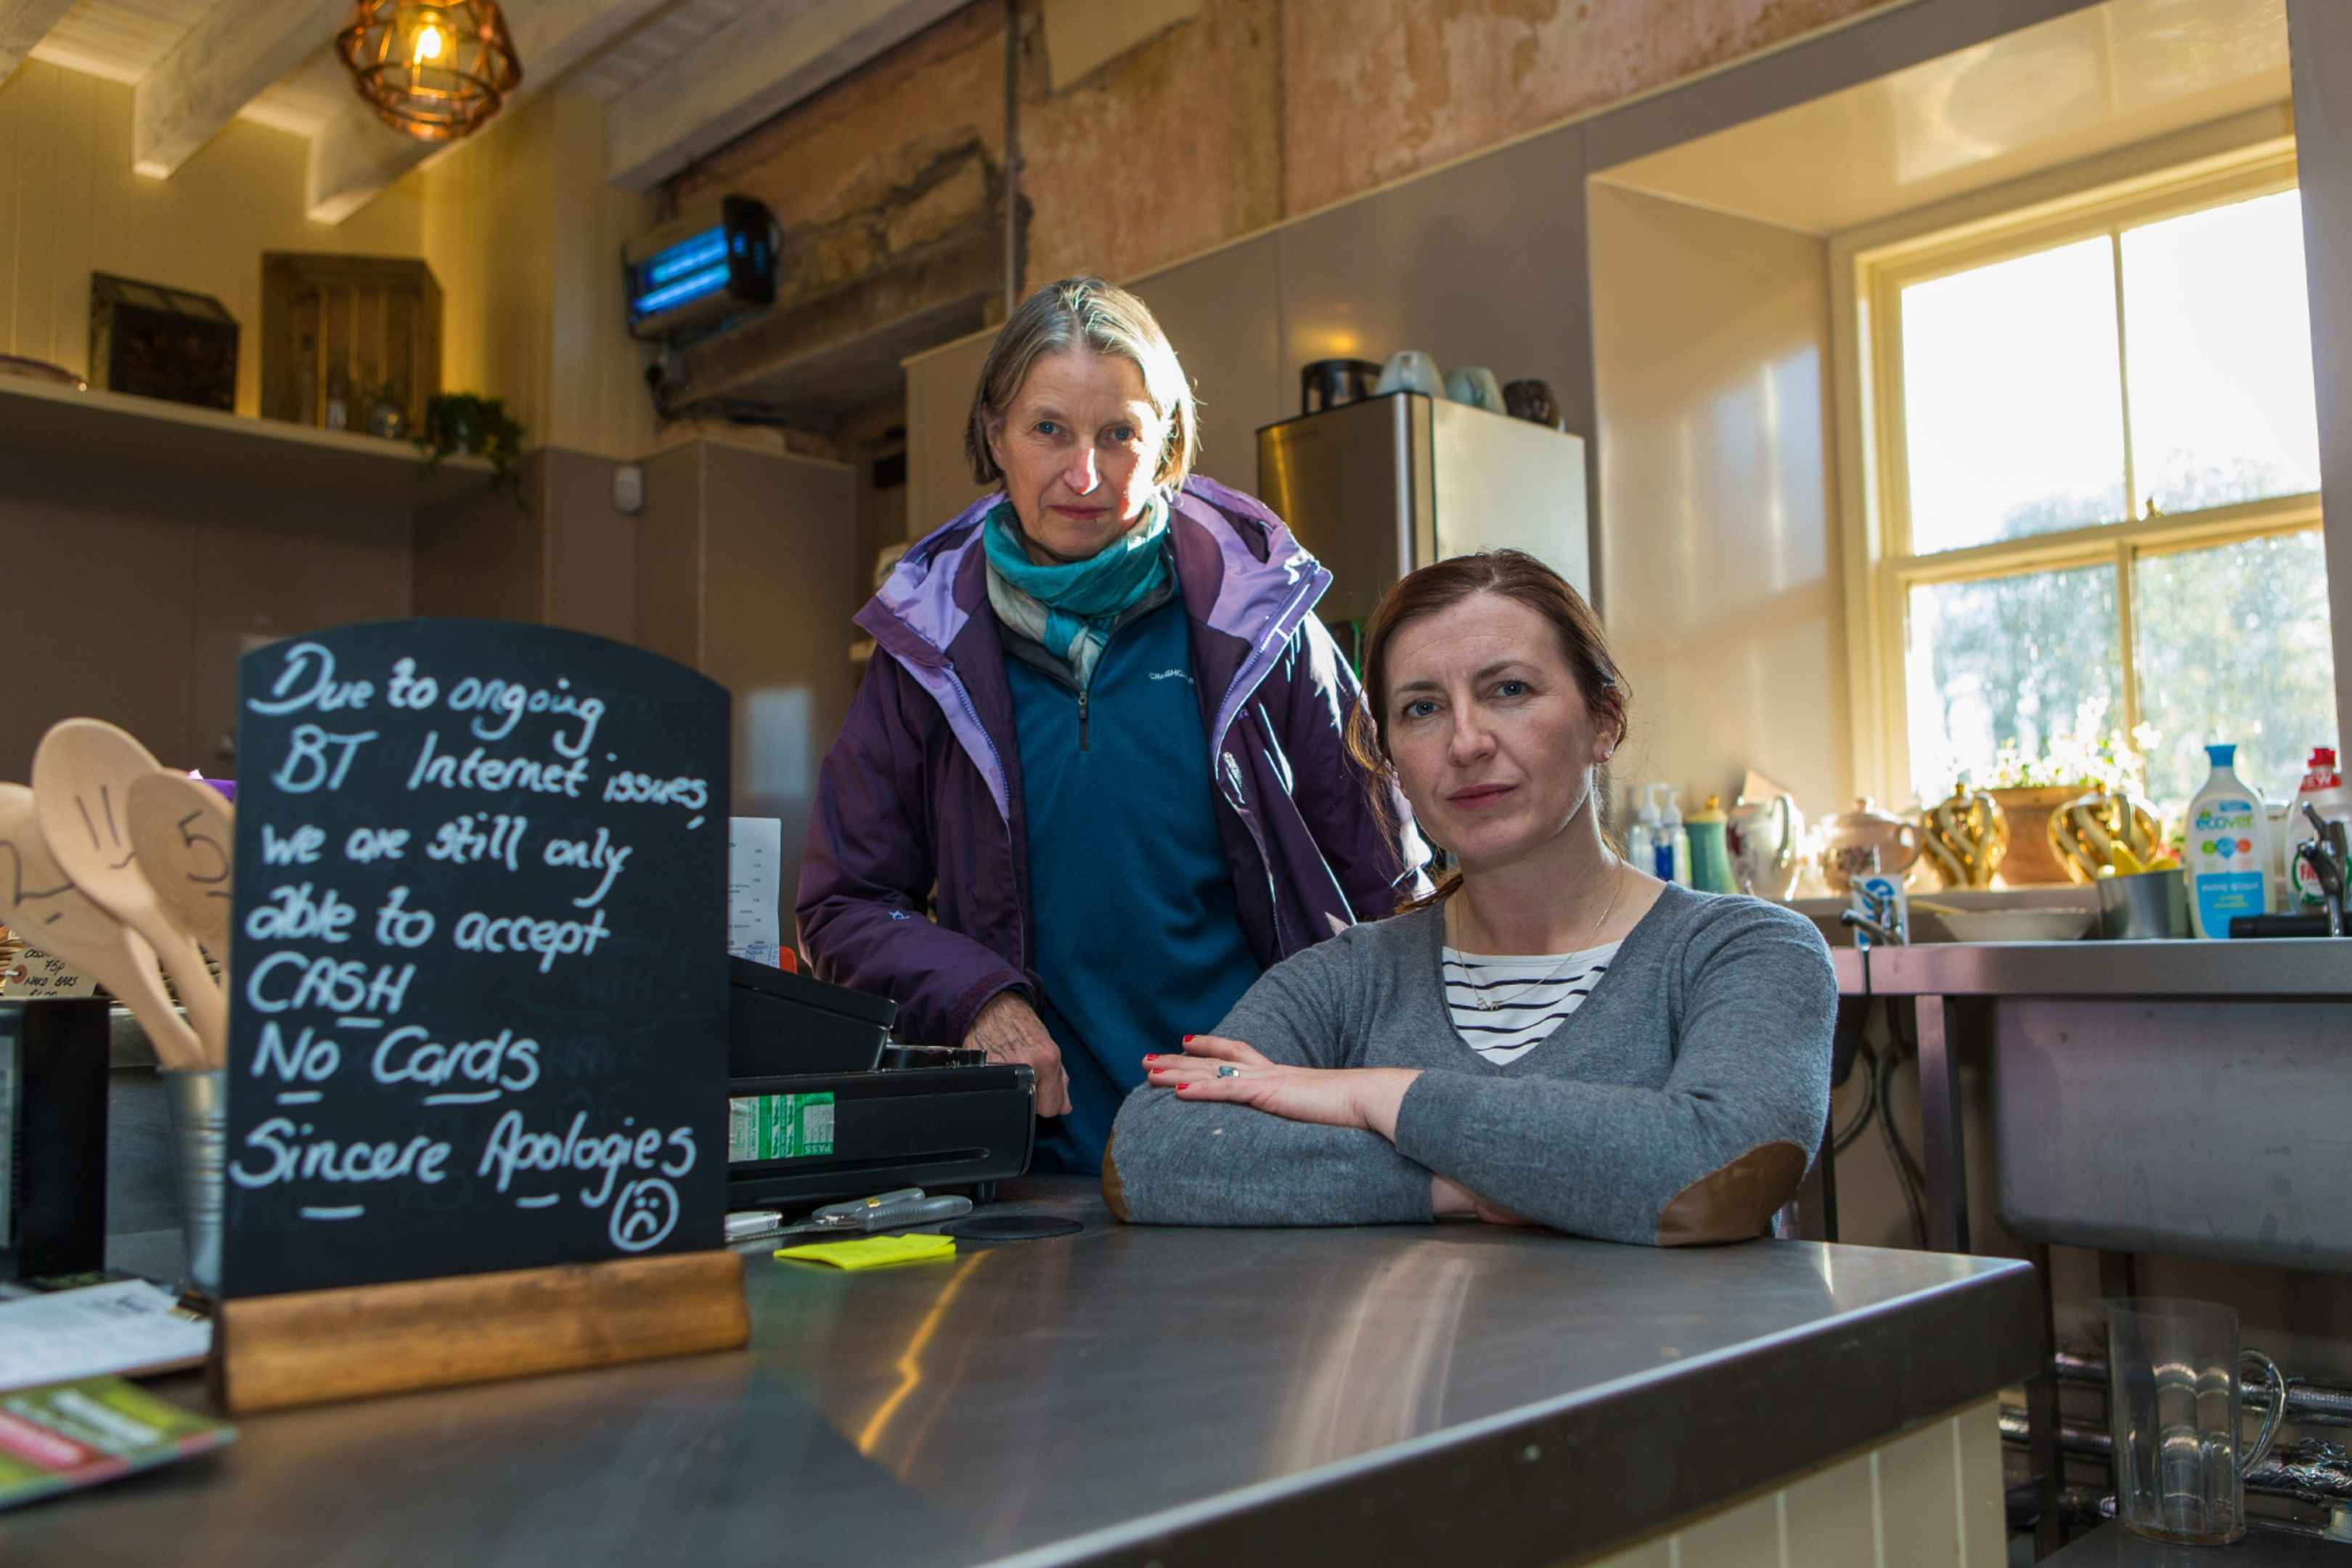 Lady Catherine Erskine and Nosebag Owner Liz Mitchell, disappointed that cash is the only tender they can accept due to BT delays.